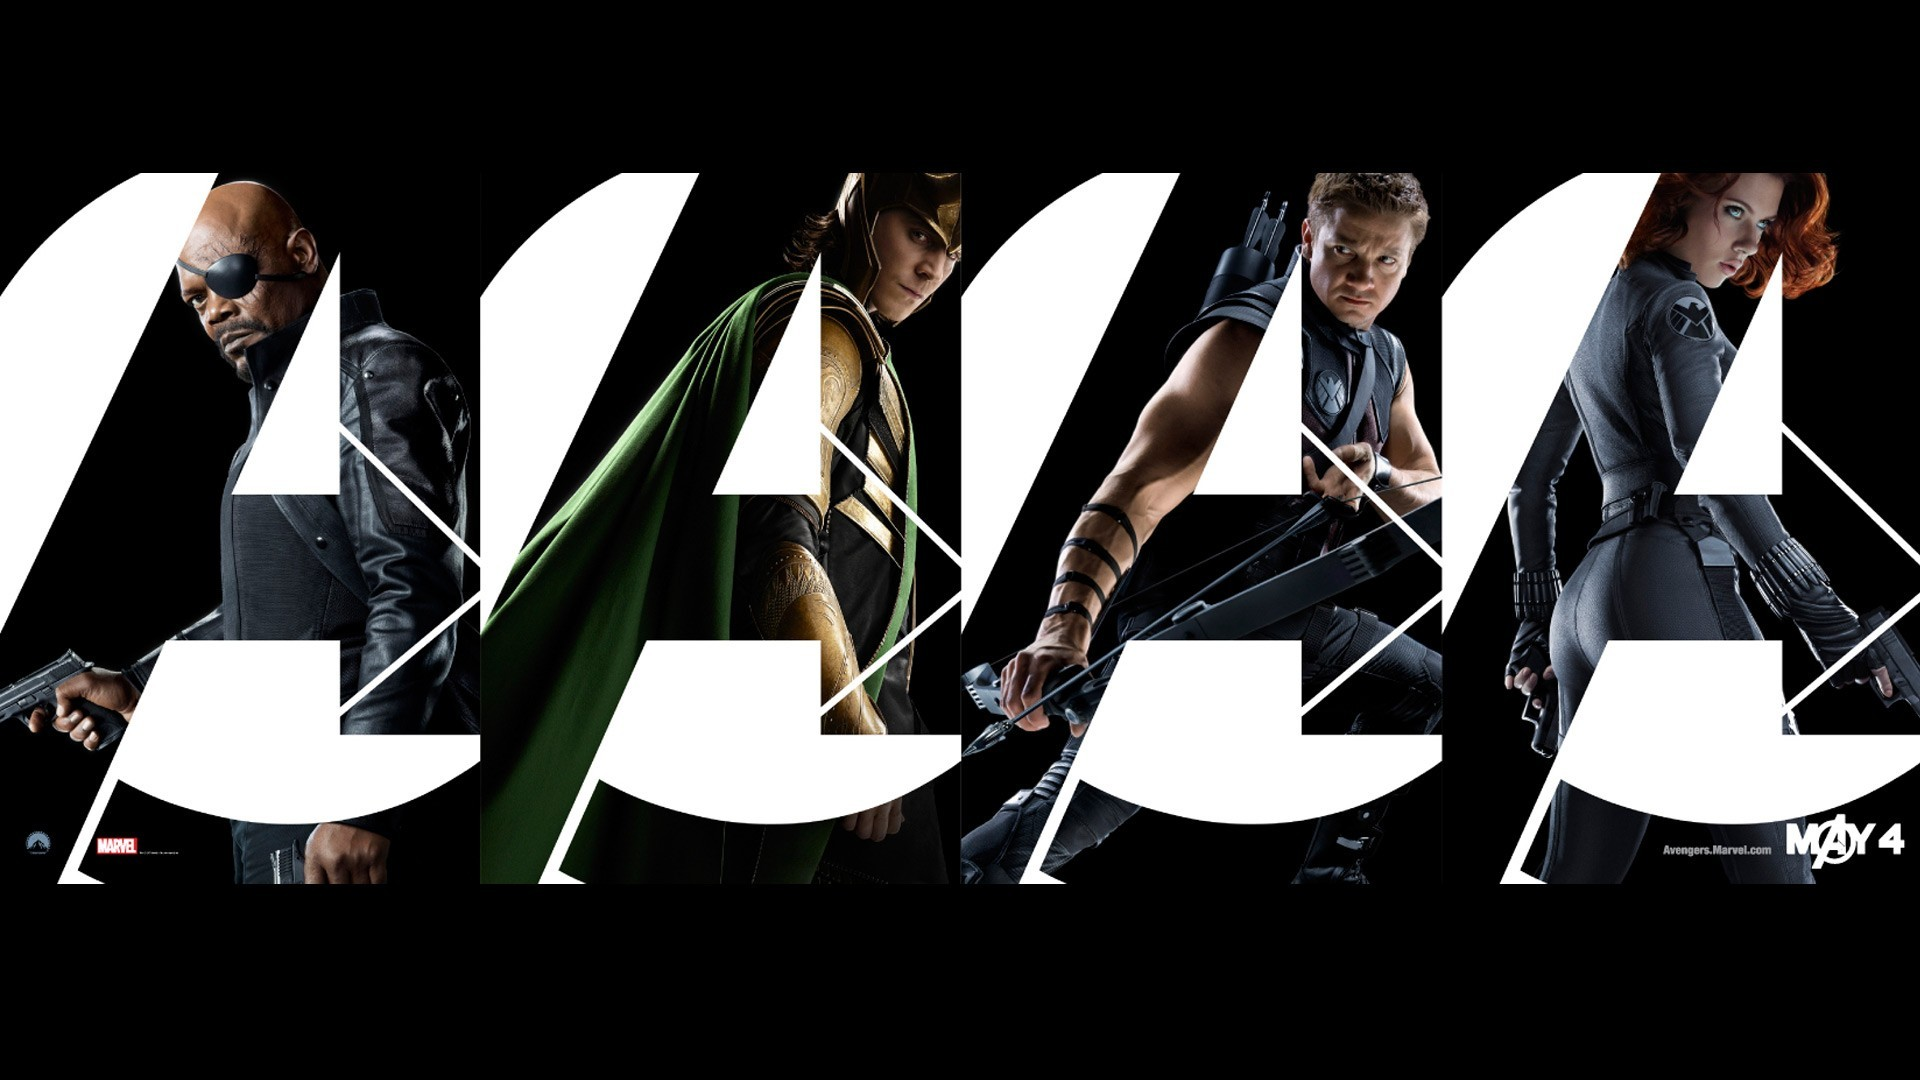 General 1920x1080 movies The Avengers Hawkeye Nick Fury Black Widow Loki Clint Barton Tom Hiddleston Jeremy Renner Samuel L. Jackson Scarlett Johansson Marvel Cinematic Universe